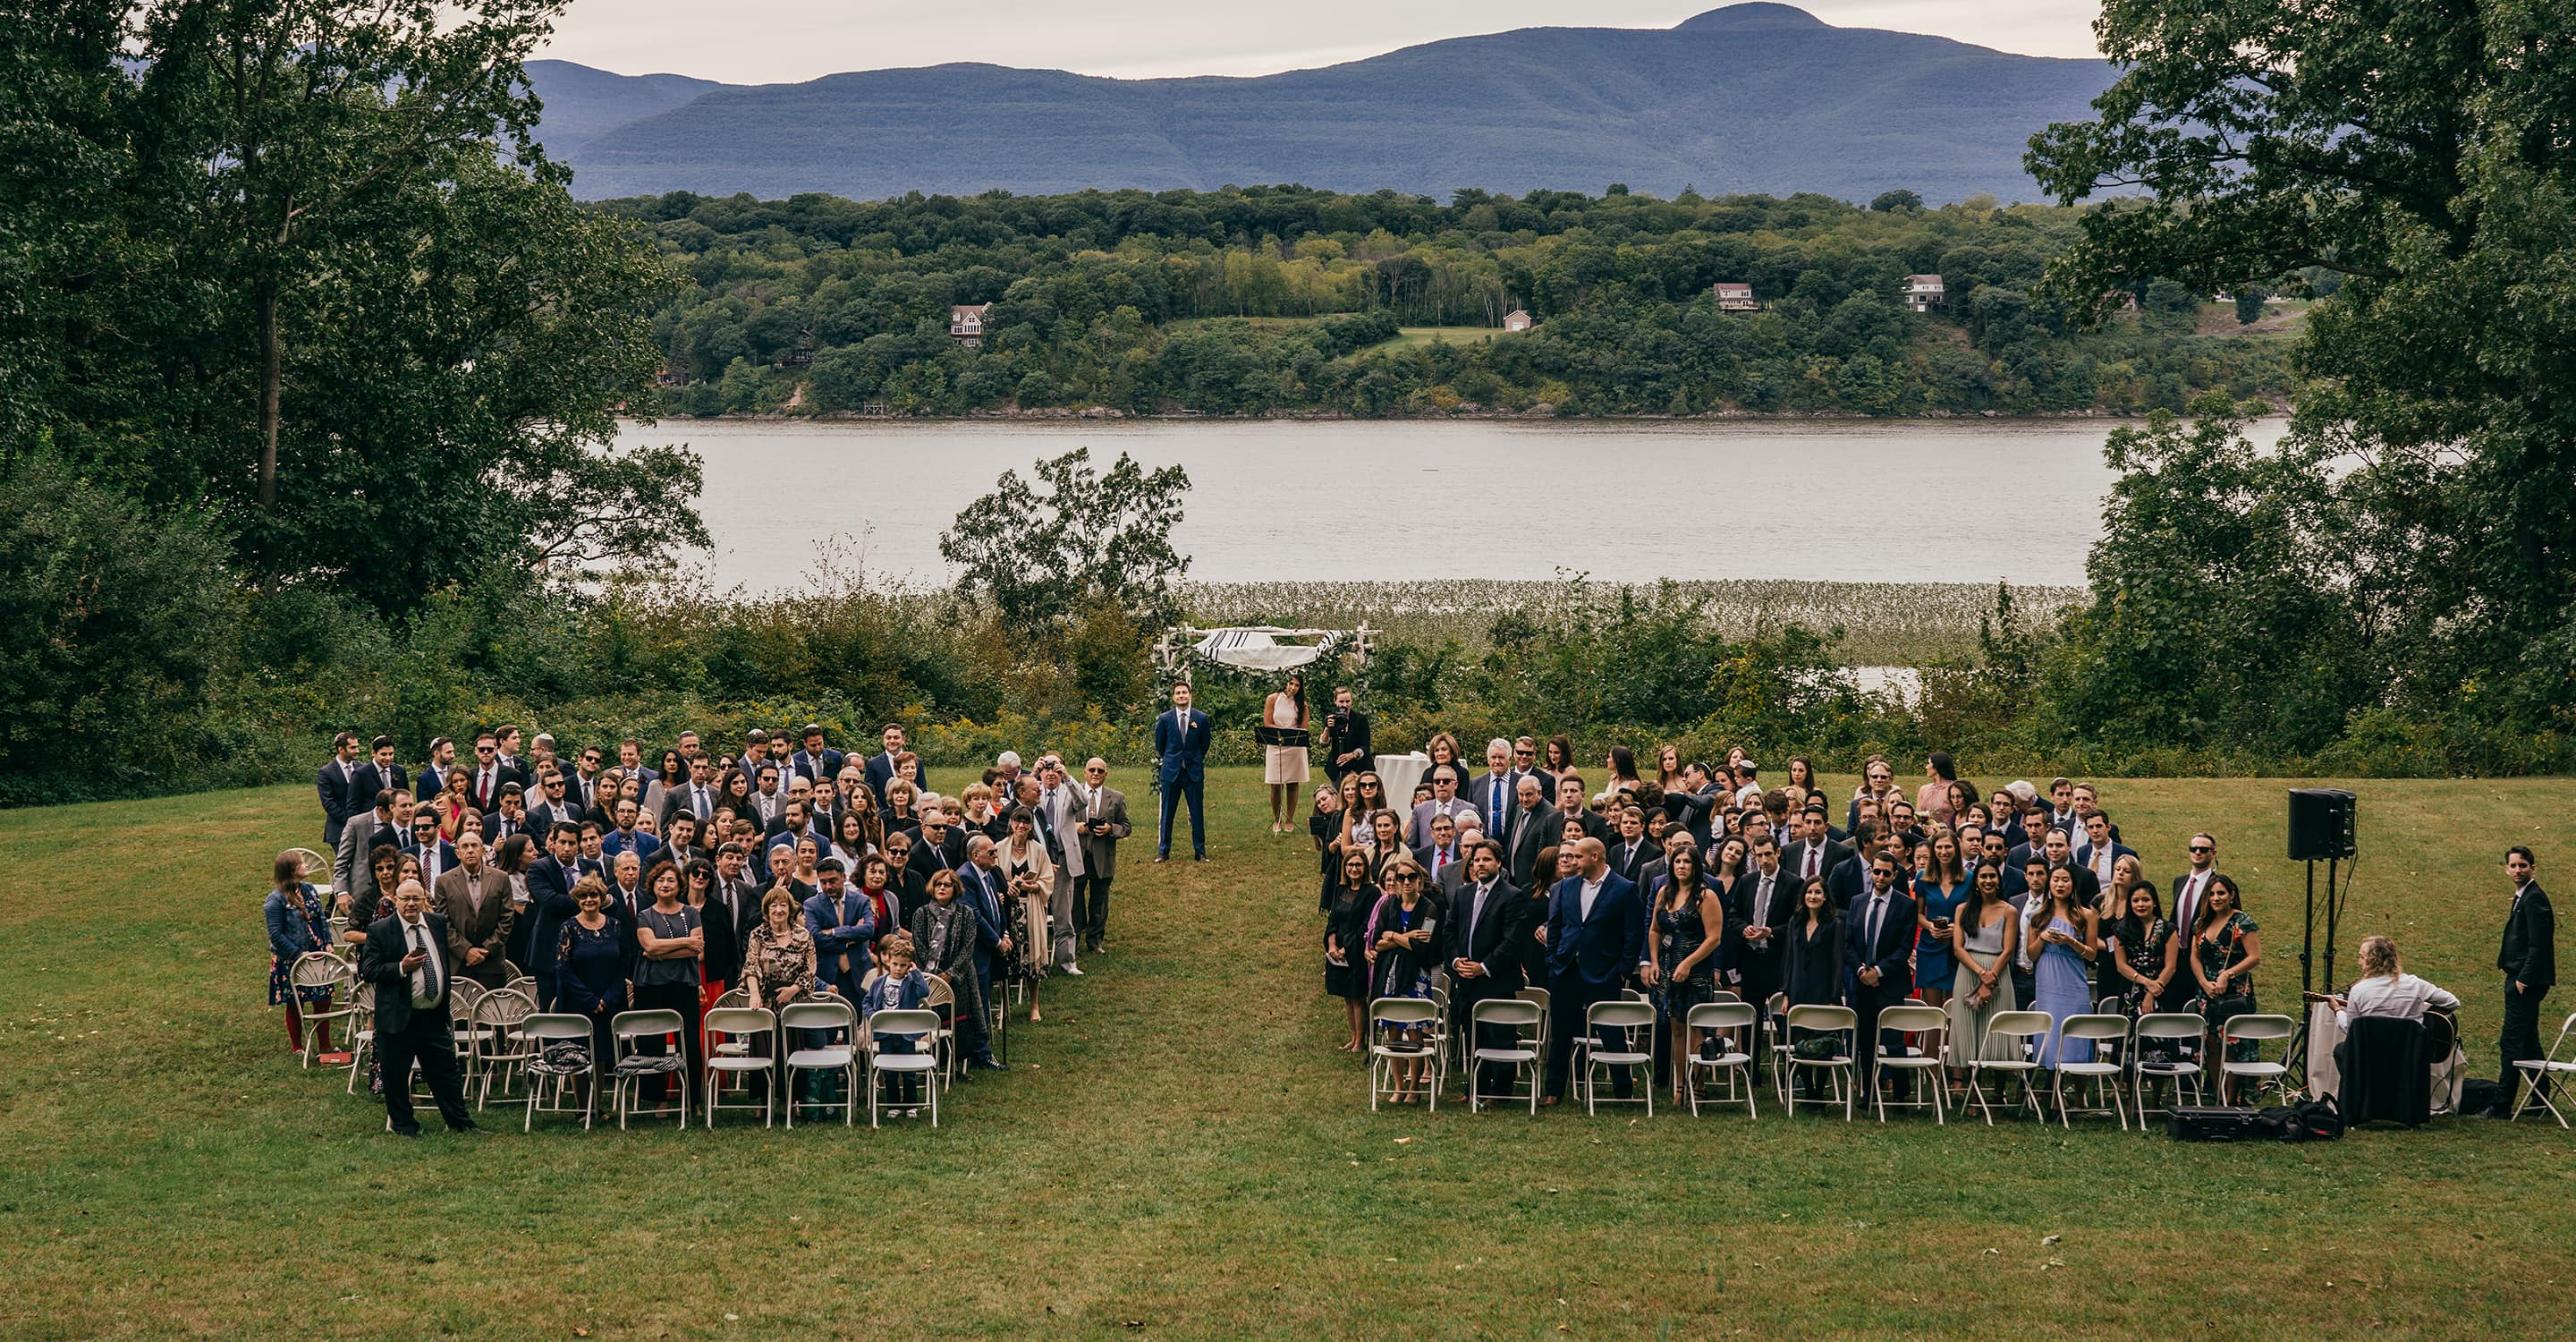 Wedding guests stand up and turn around as bride walks to wedding ceremony with Hudson River and mountains in background.